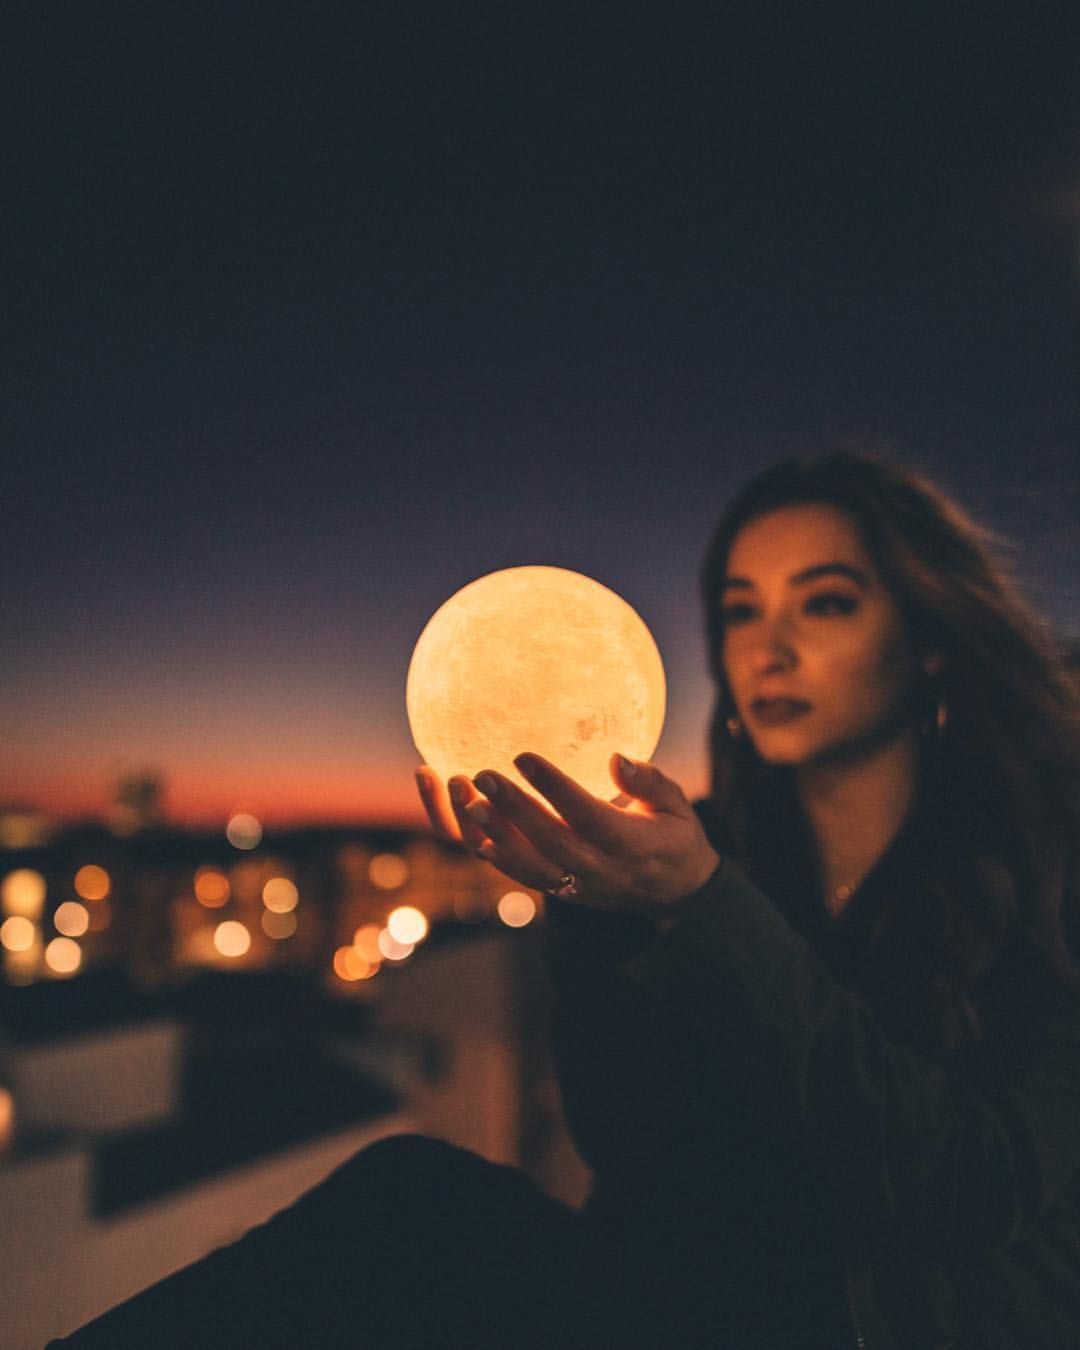 she has the moon in her hands. 🌕 if youve ever wanted to